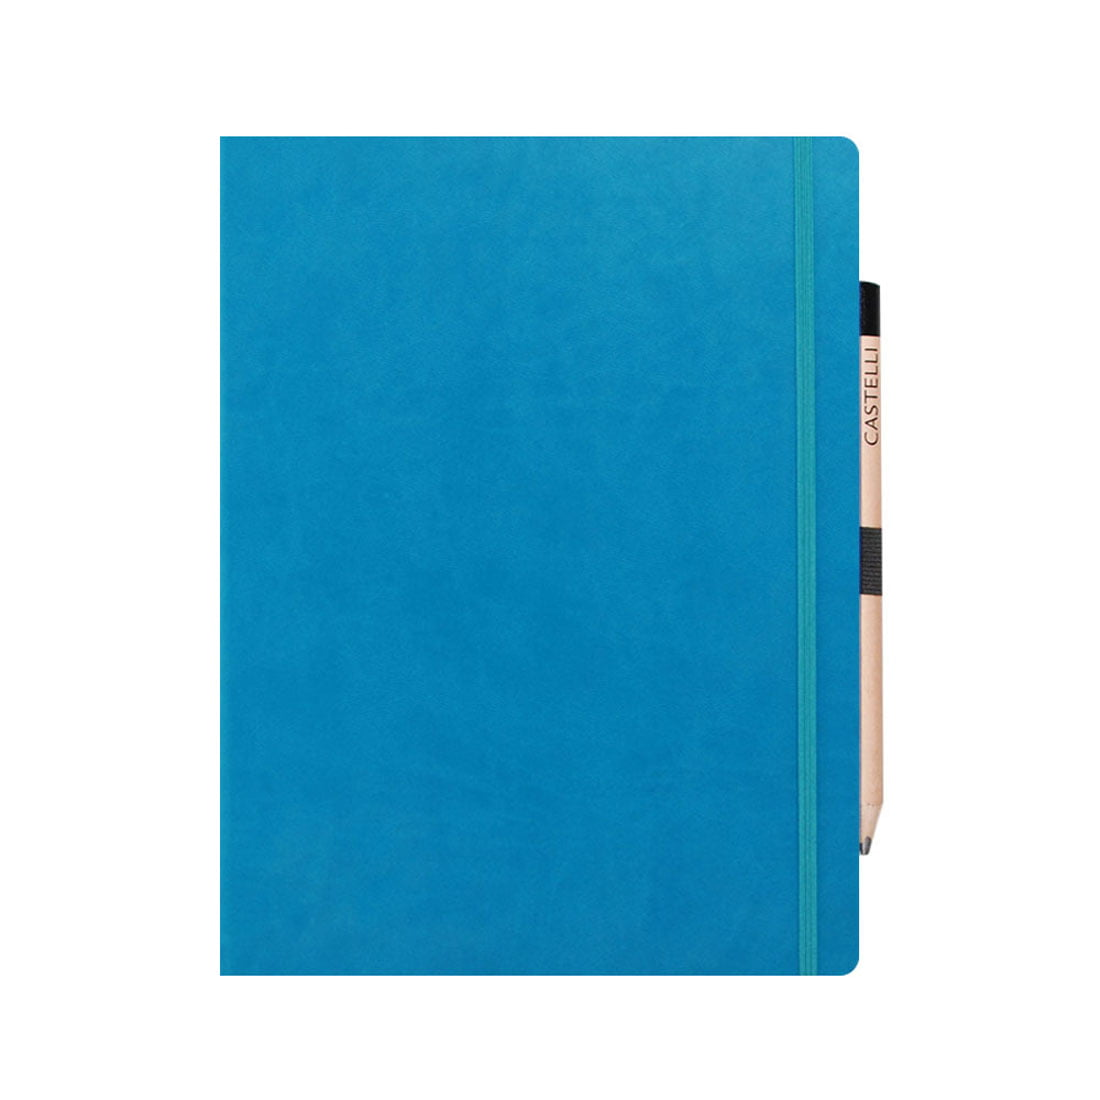 Bright blue journal, co-ordinating elasticated closure band and pencil